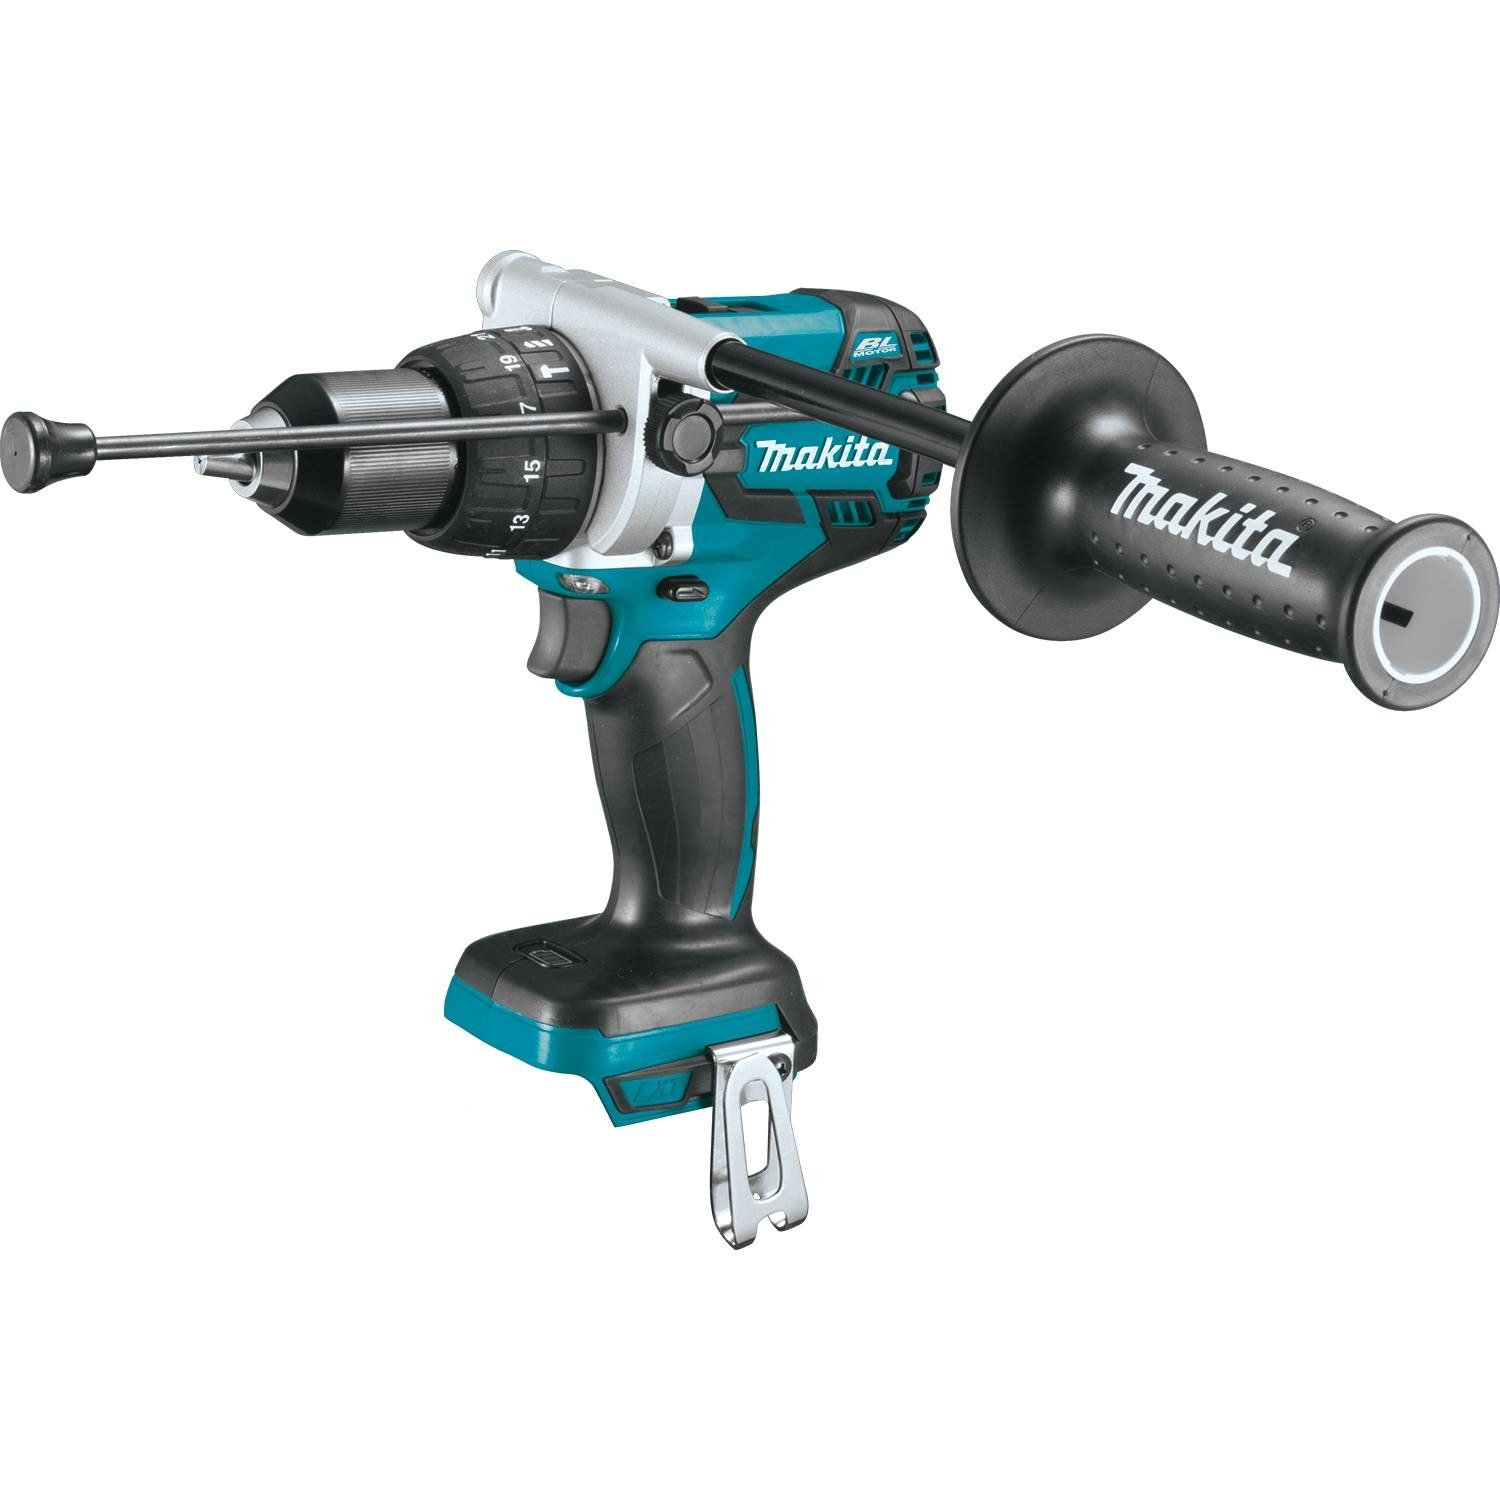 "Makita Lithium-Ion Brushless Cordless 1/2"" Hammer Driver-Drill"